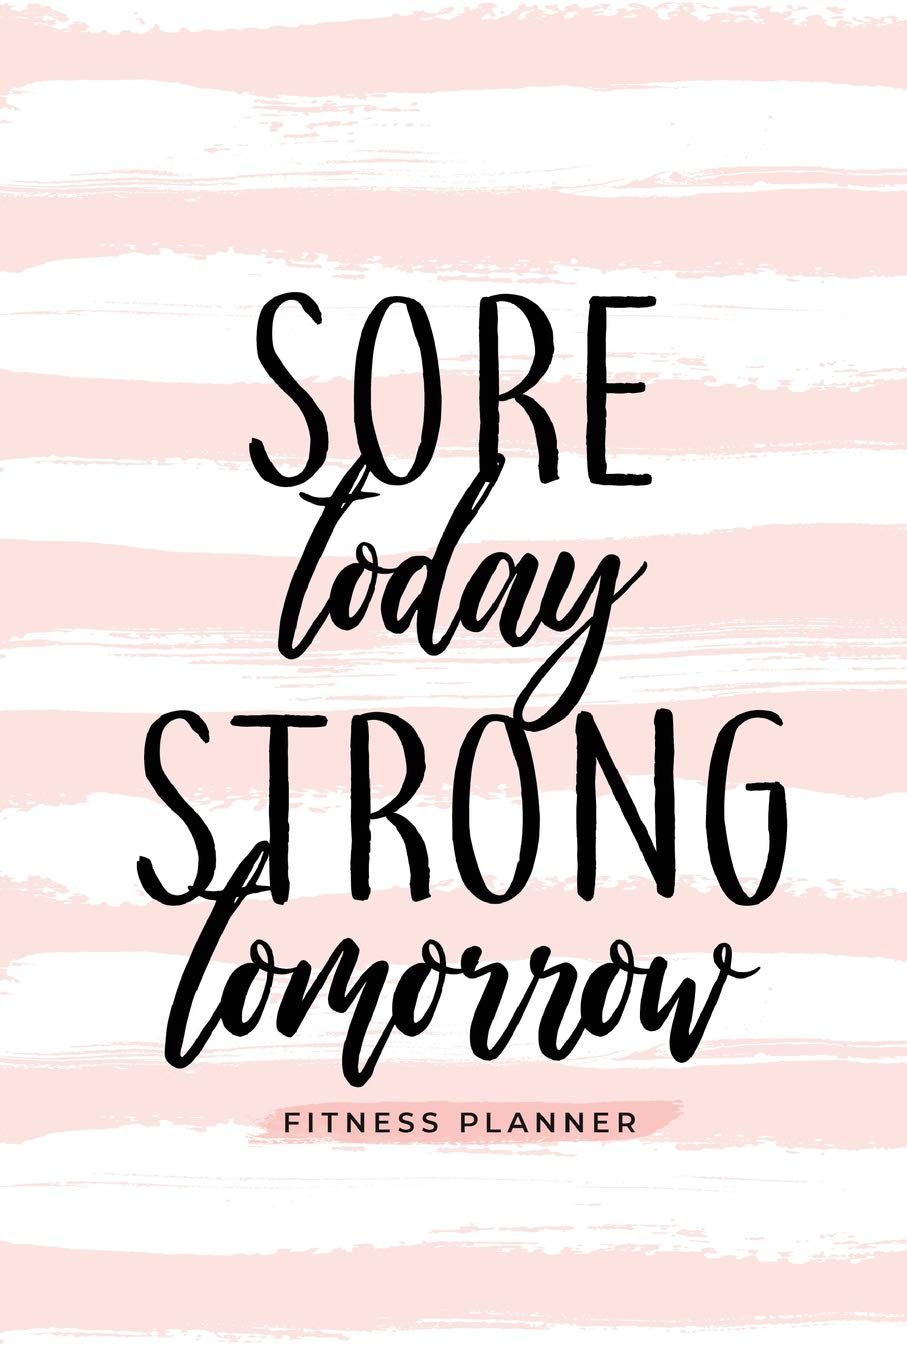 Sore Today Strong Tomorrow Fitness Planner: Workout Log and Meal Planning Notebook to Track Nutrition, Diet, and Exercise - A Weight Loss Journal for ... Tracker Book, Diary for Workouts and Wellness 1